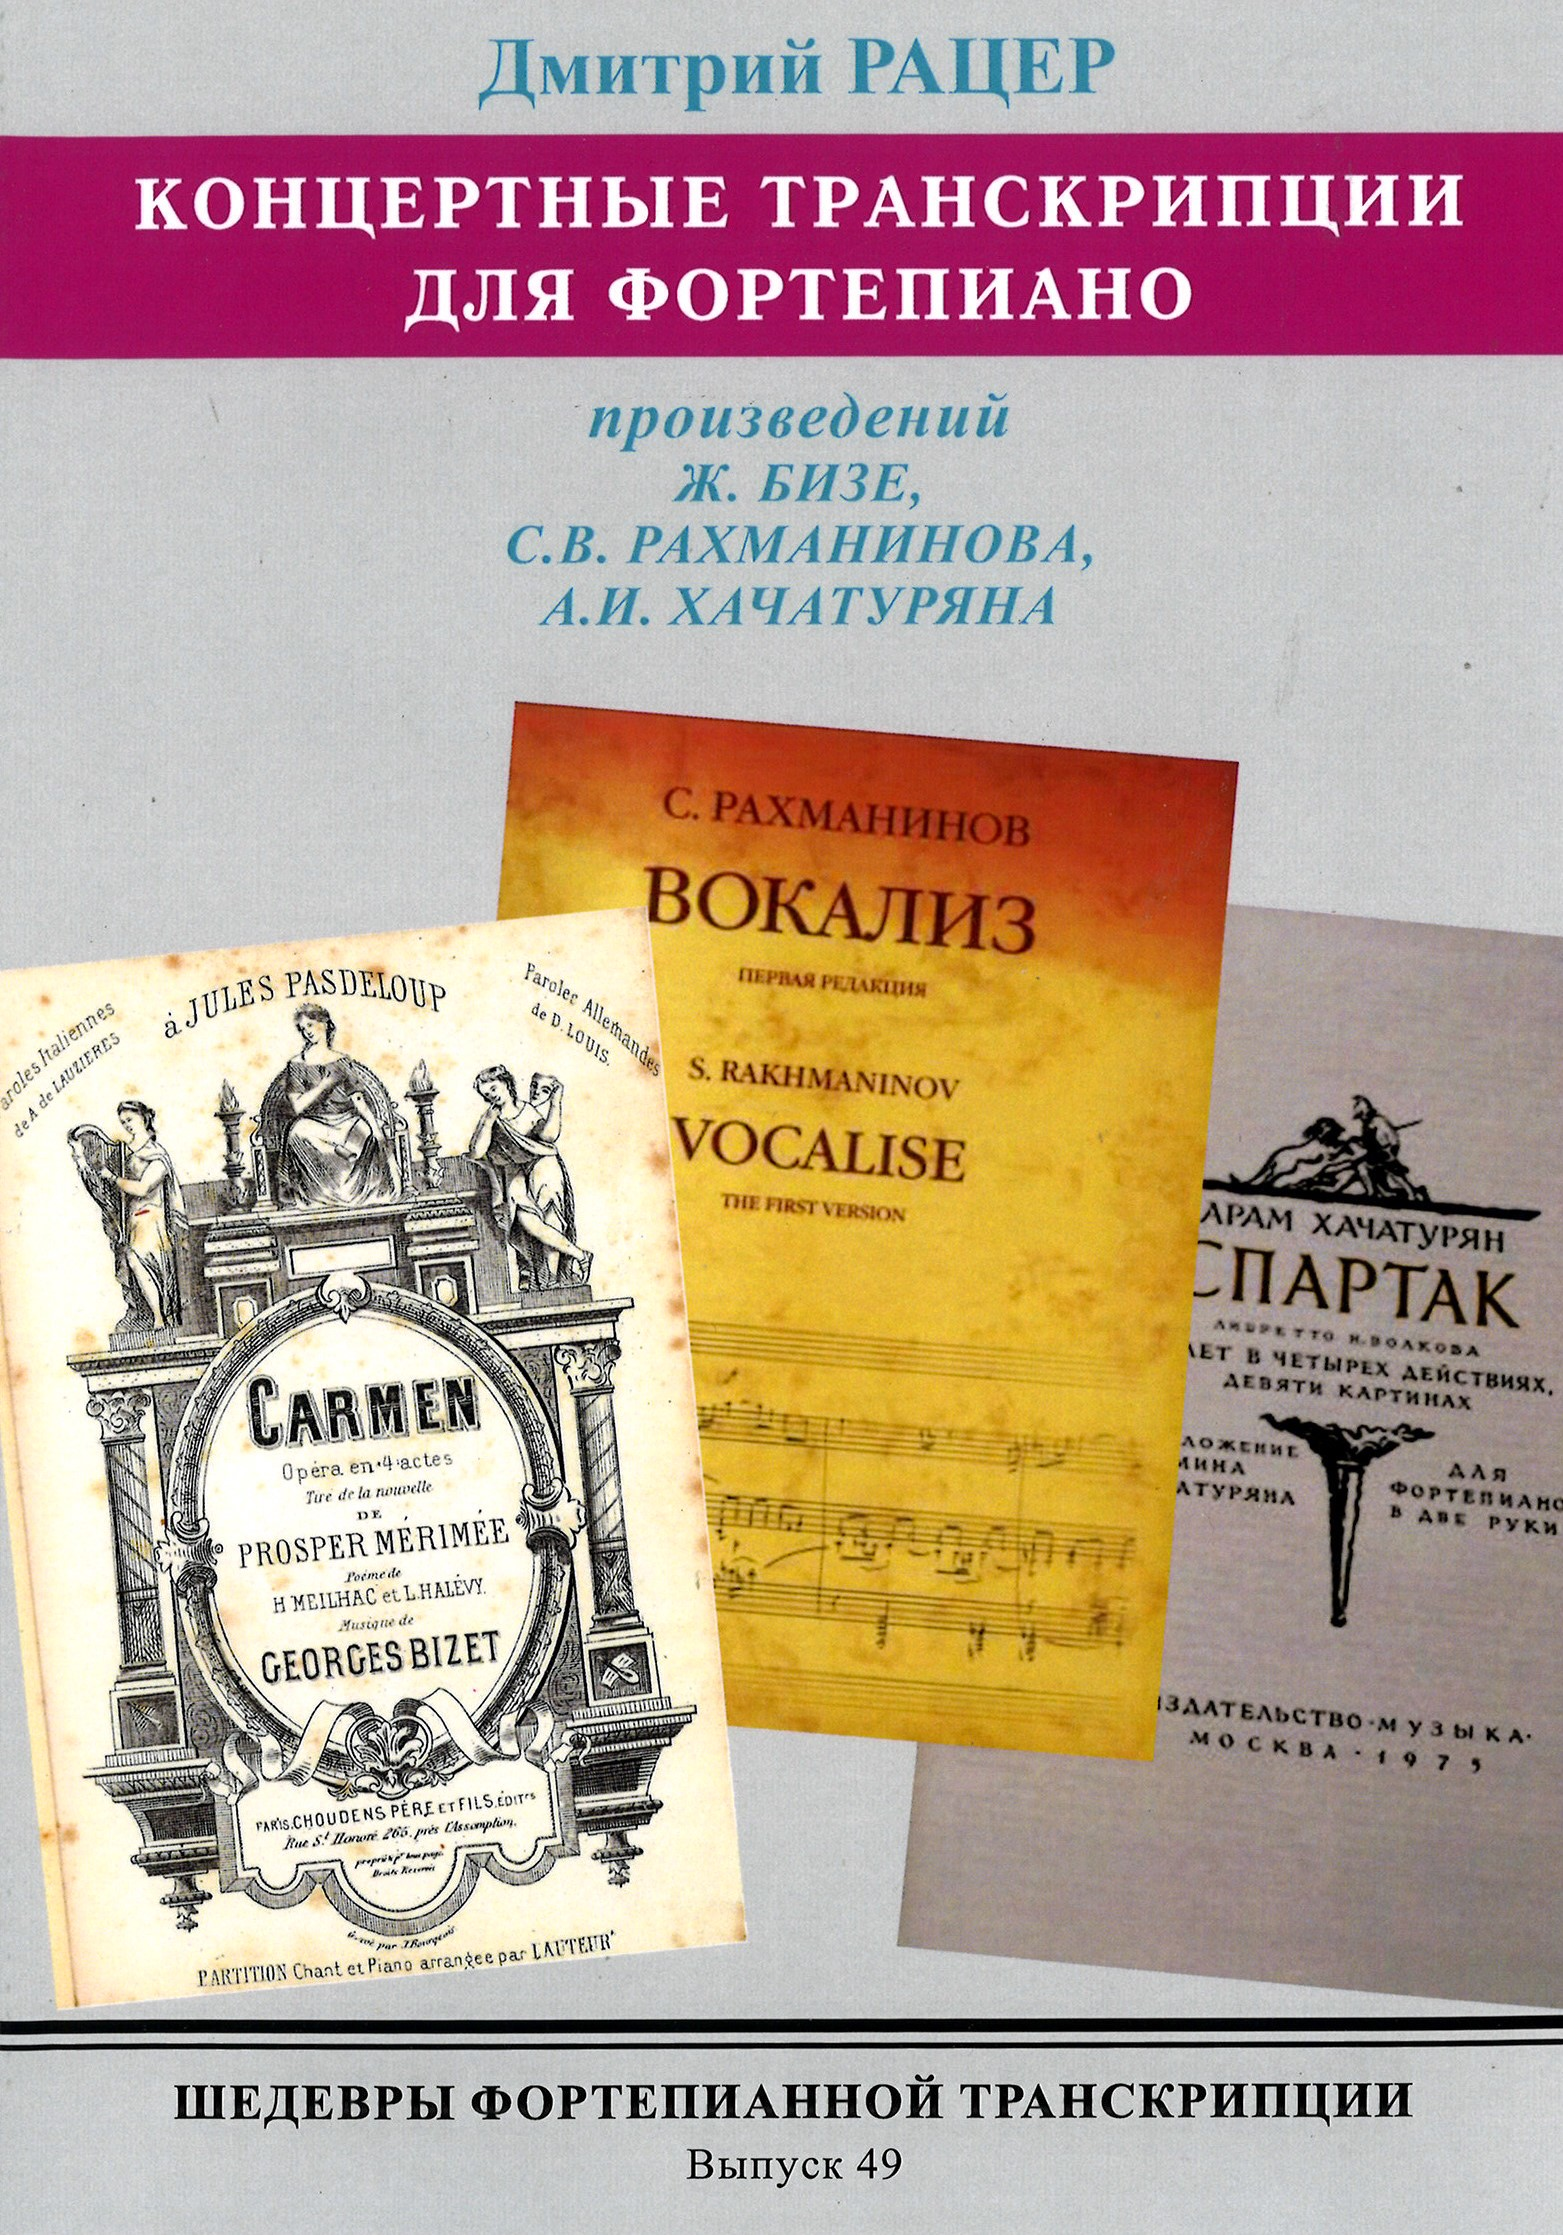 "Masterpieces of Piano Transcription Vol. 49. Dmitry RATSER. Rachmaninov - Vocalise, Bizet - Fantasia on three themes from the opera ""Carmen"", Khachaturian - Andante from the ballet Spartak."